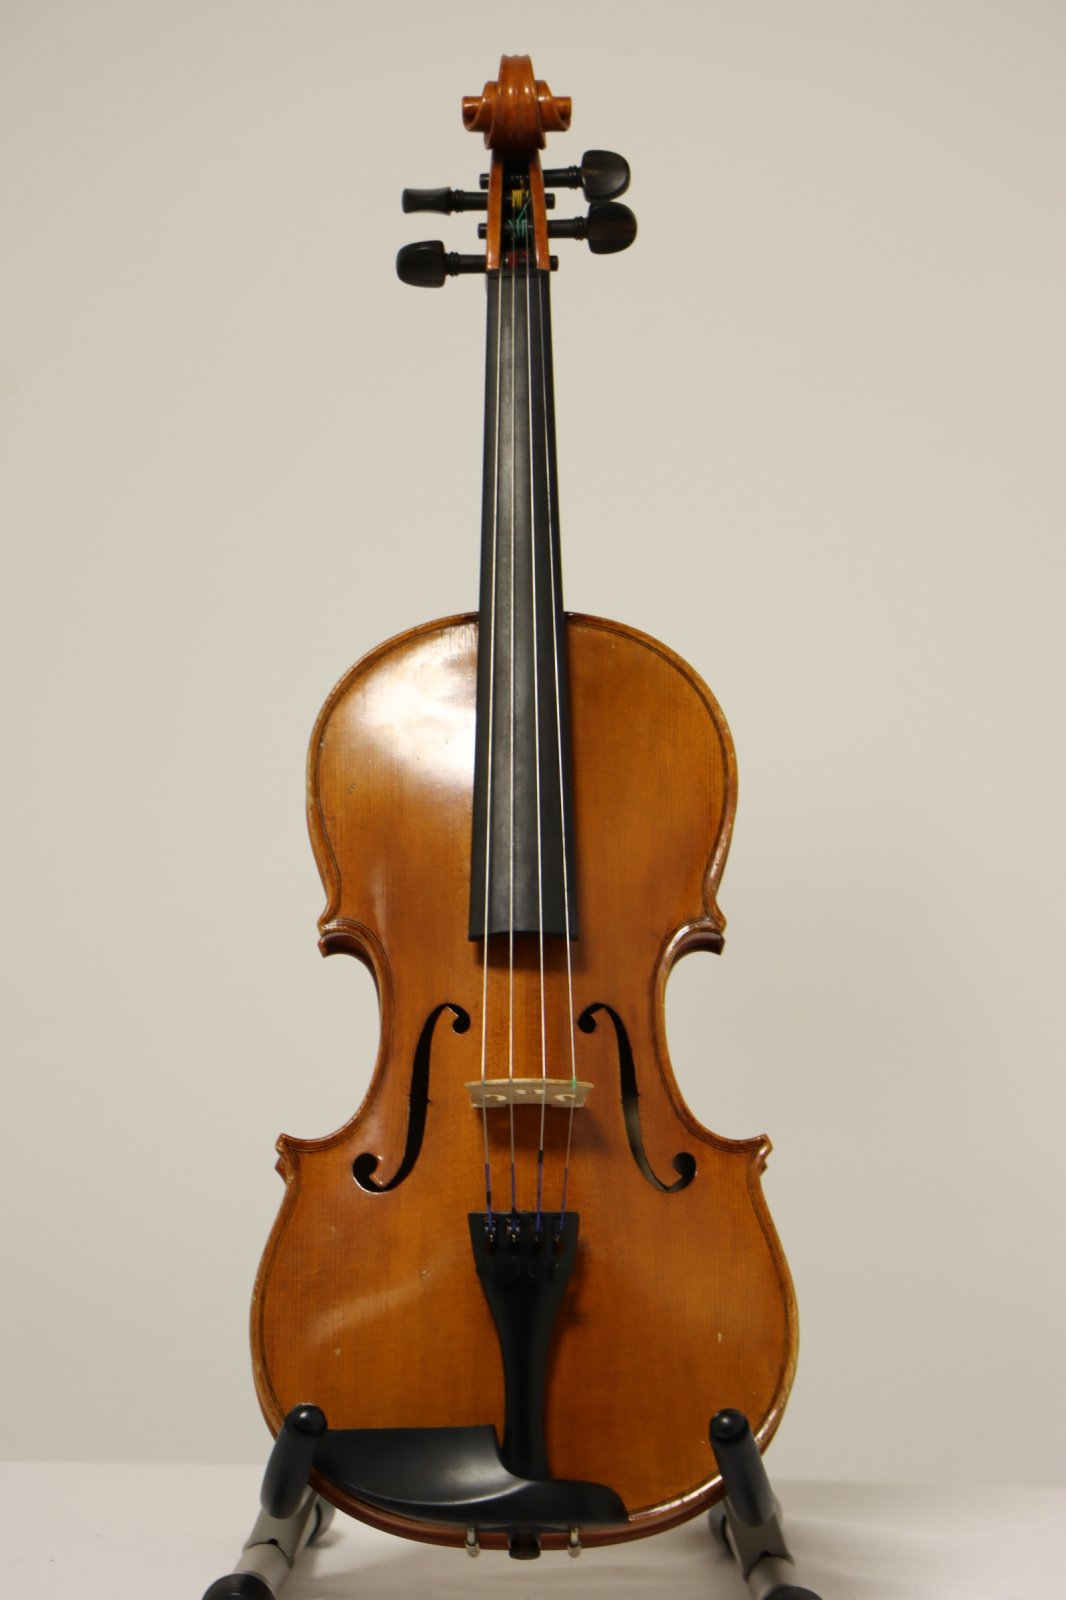 USED 4/4 Shen Violin with case and bow